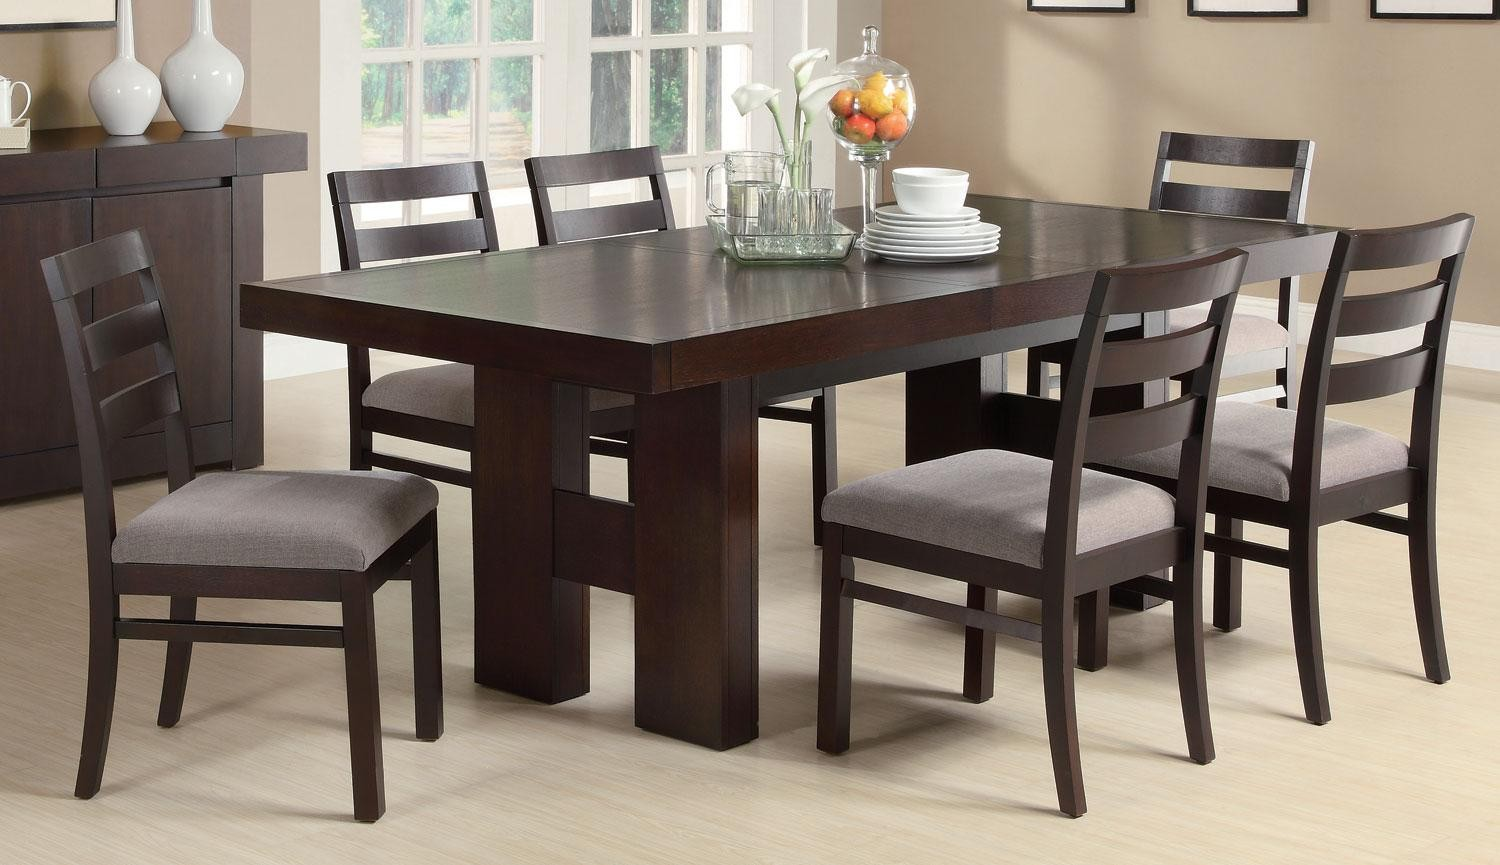 Dabny Cuccino Rectangular Dining Room Set Media Gallery 3